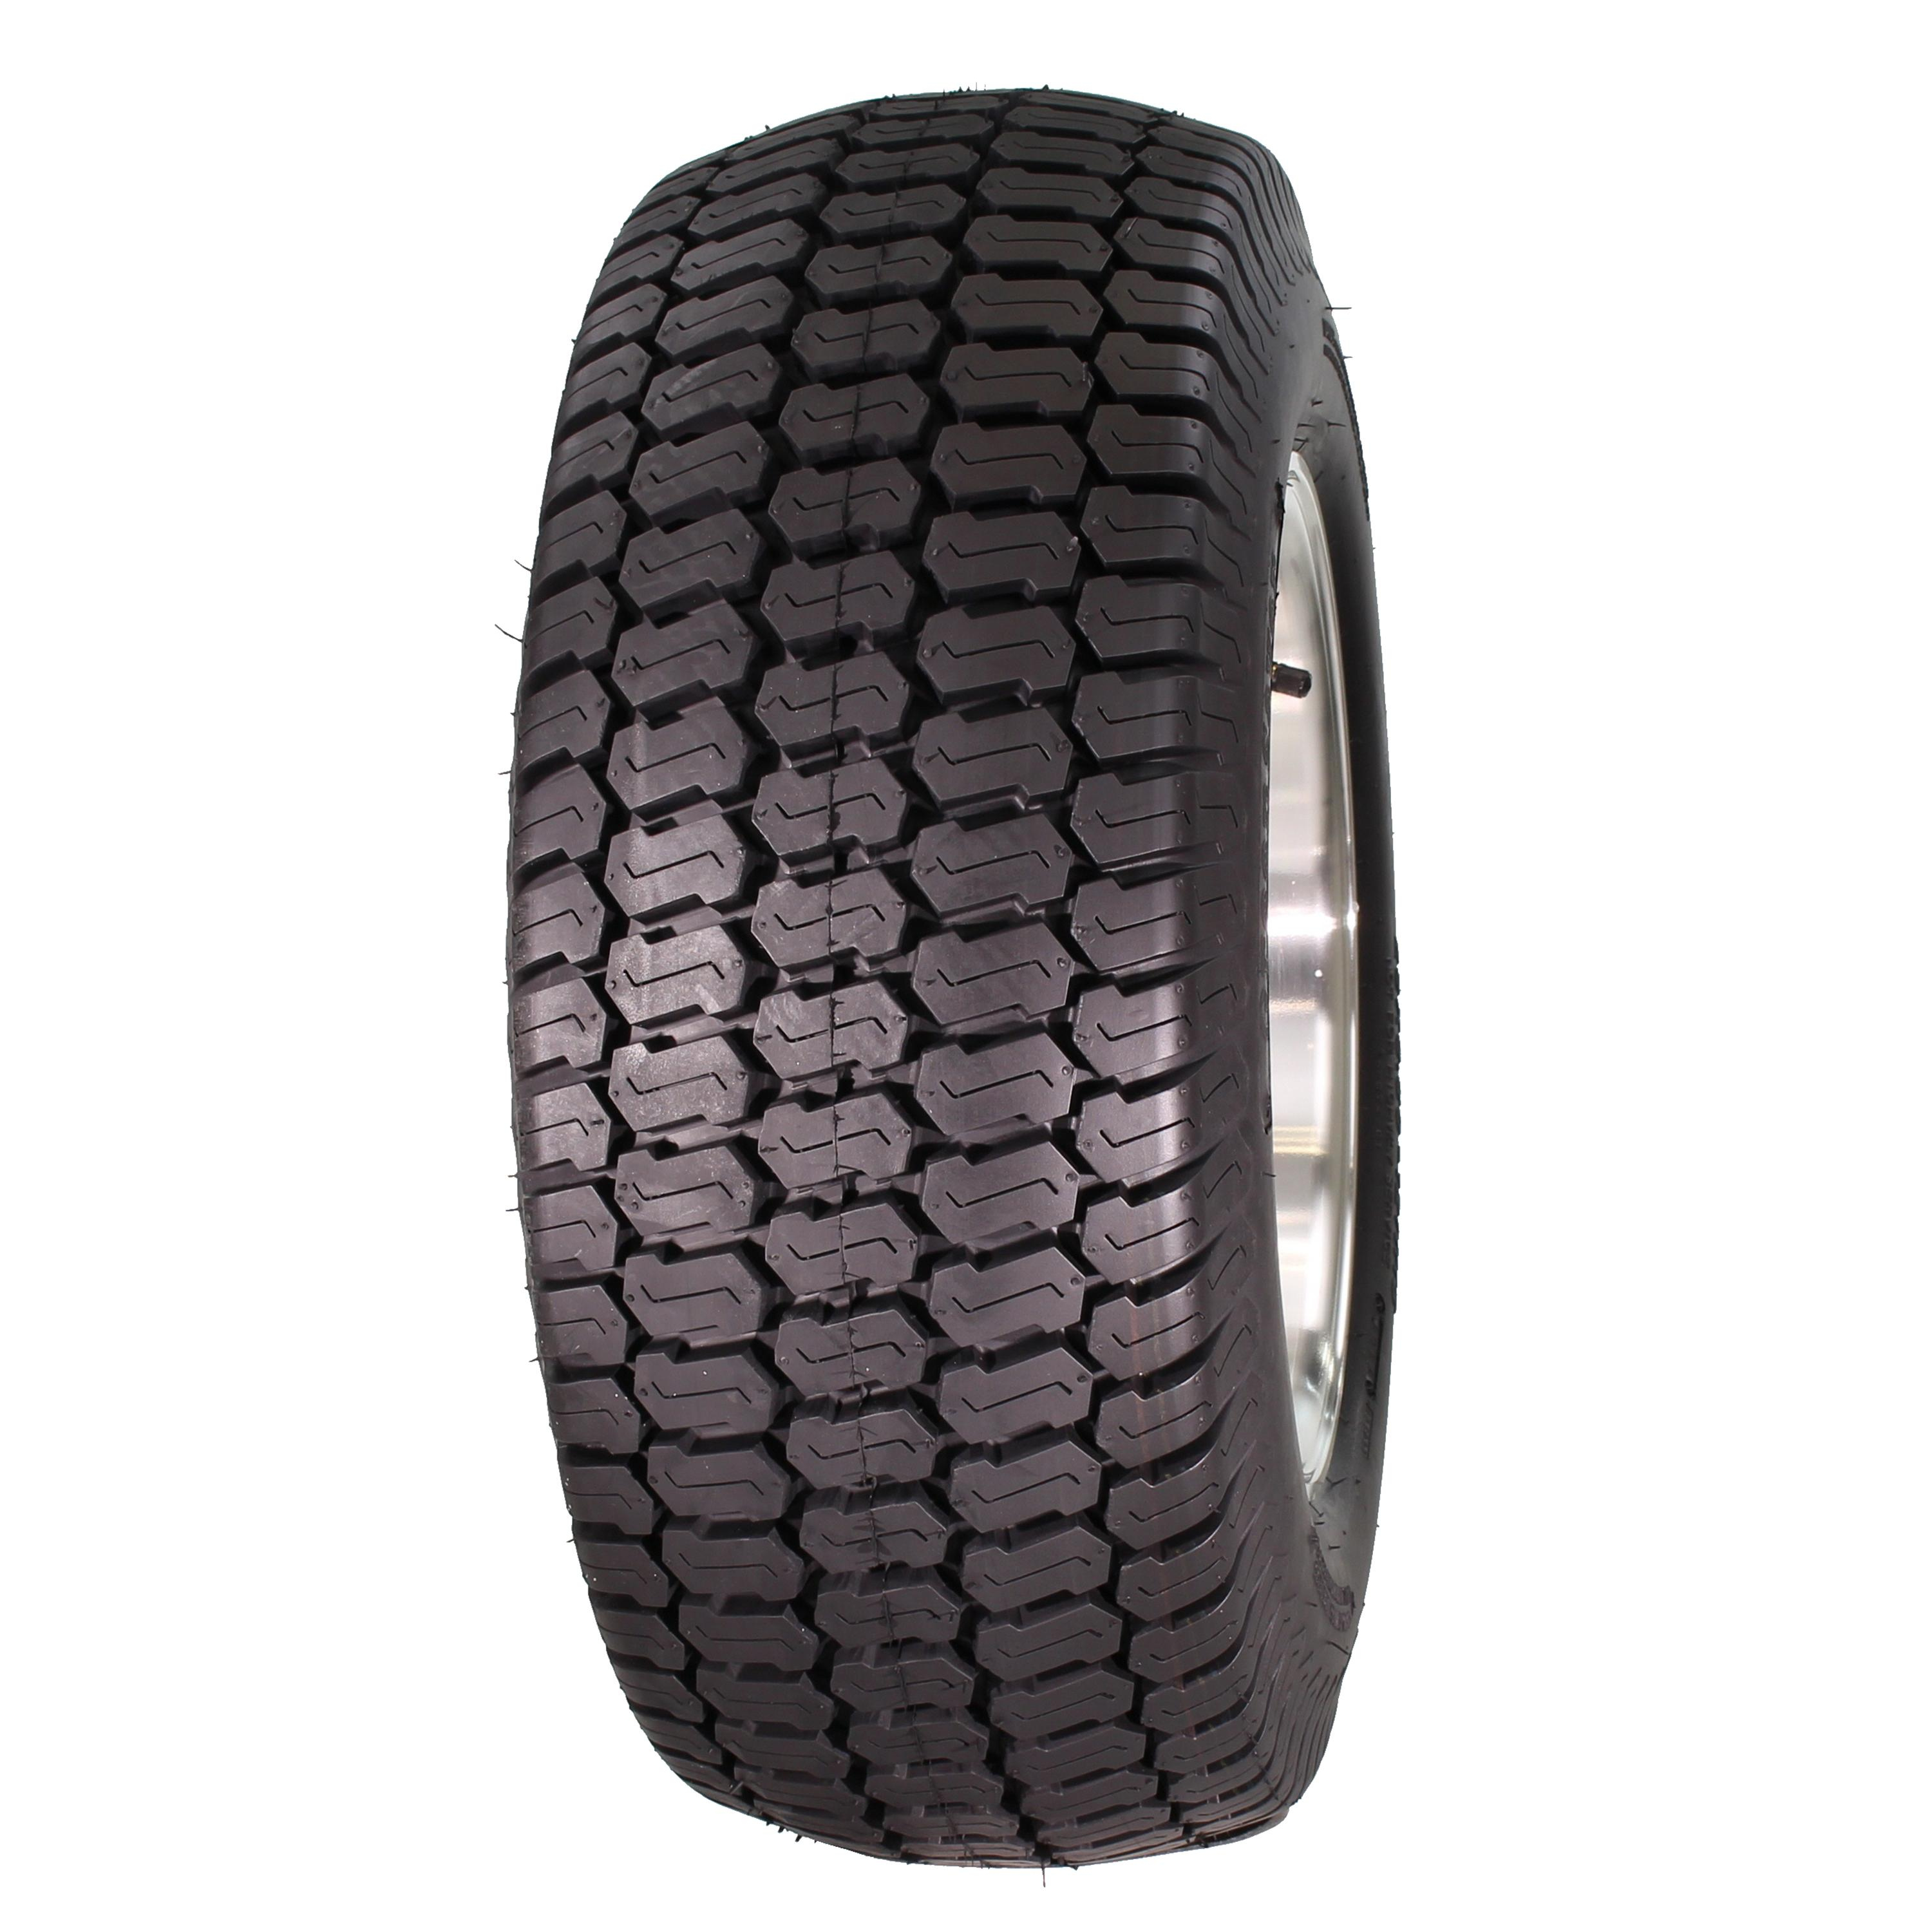 Greenball Transmaster Ultra Turf 23X8.50-12 6 Ply Lawn and Garden Tire (Tire Only)